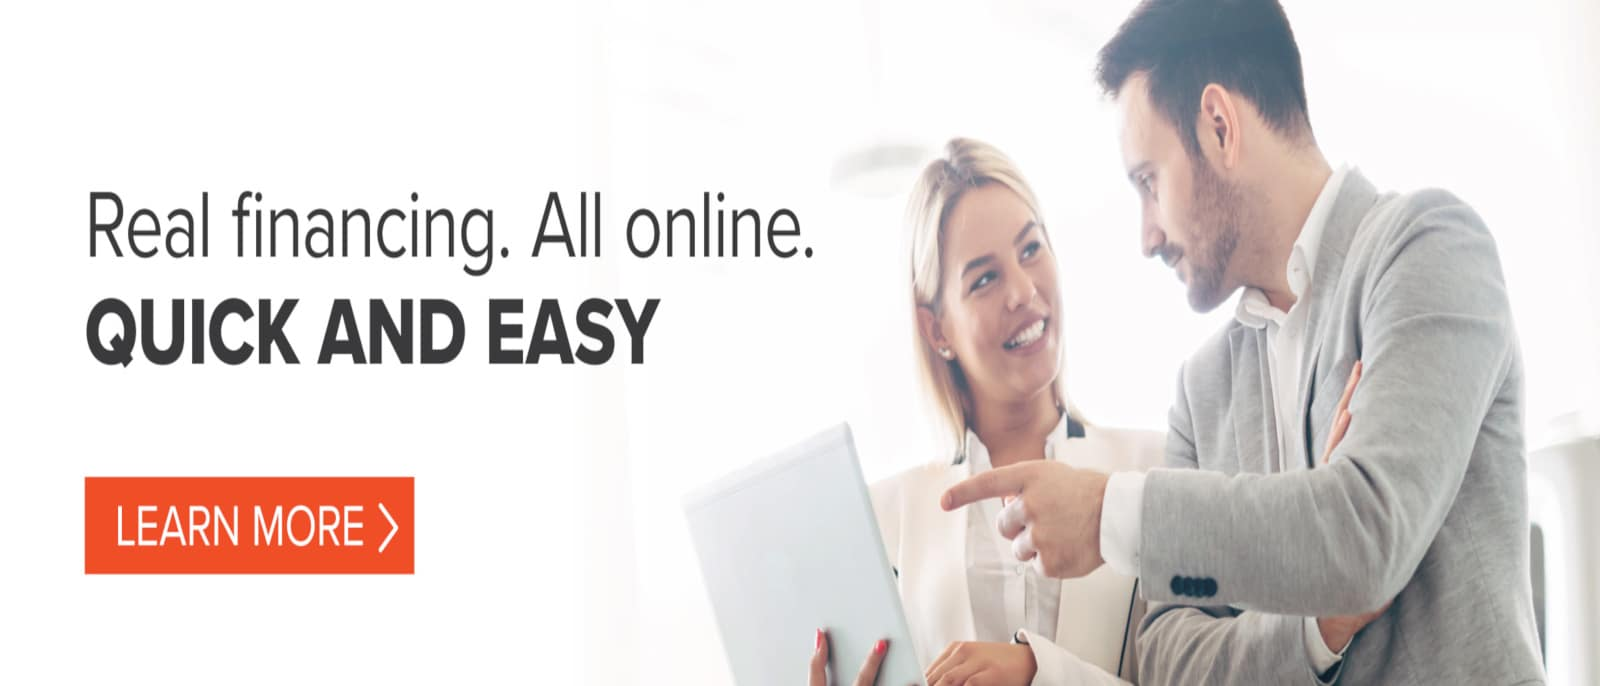 Online Financing Quick Easy